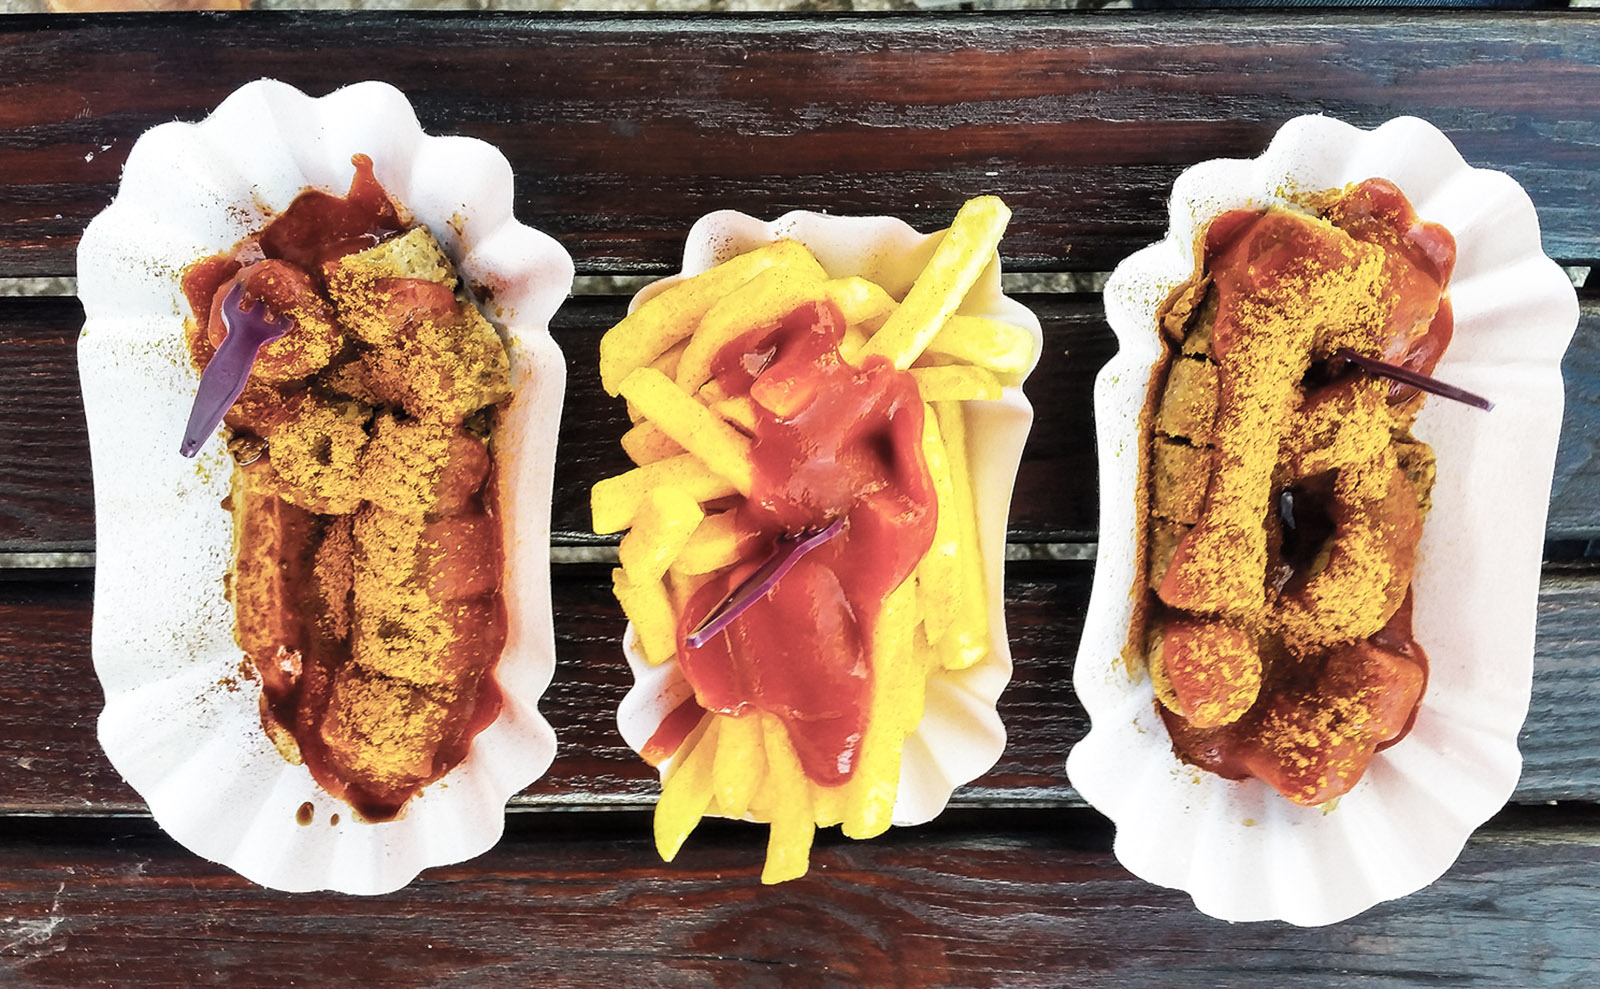 currywurst and french fries